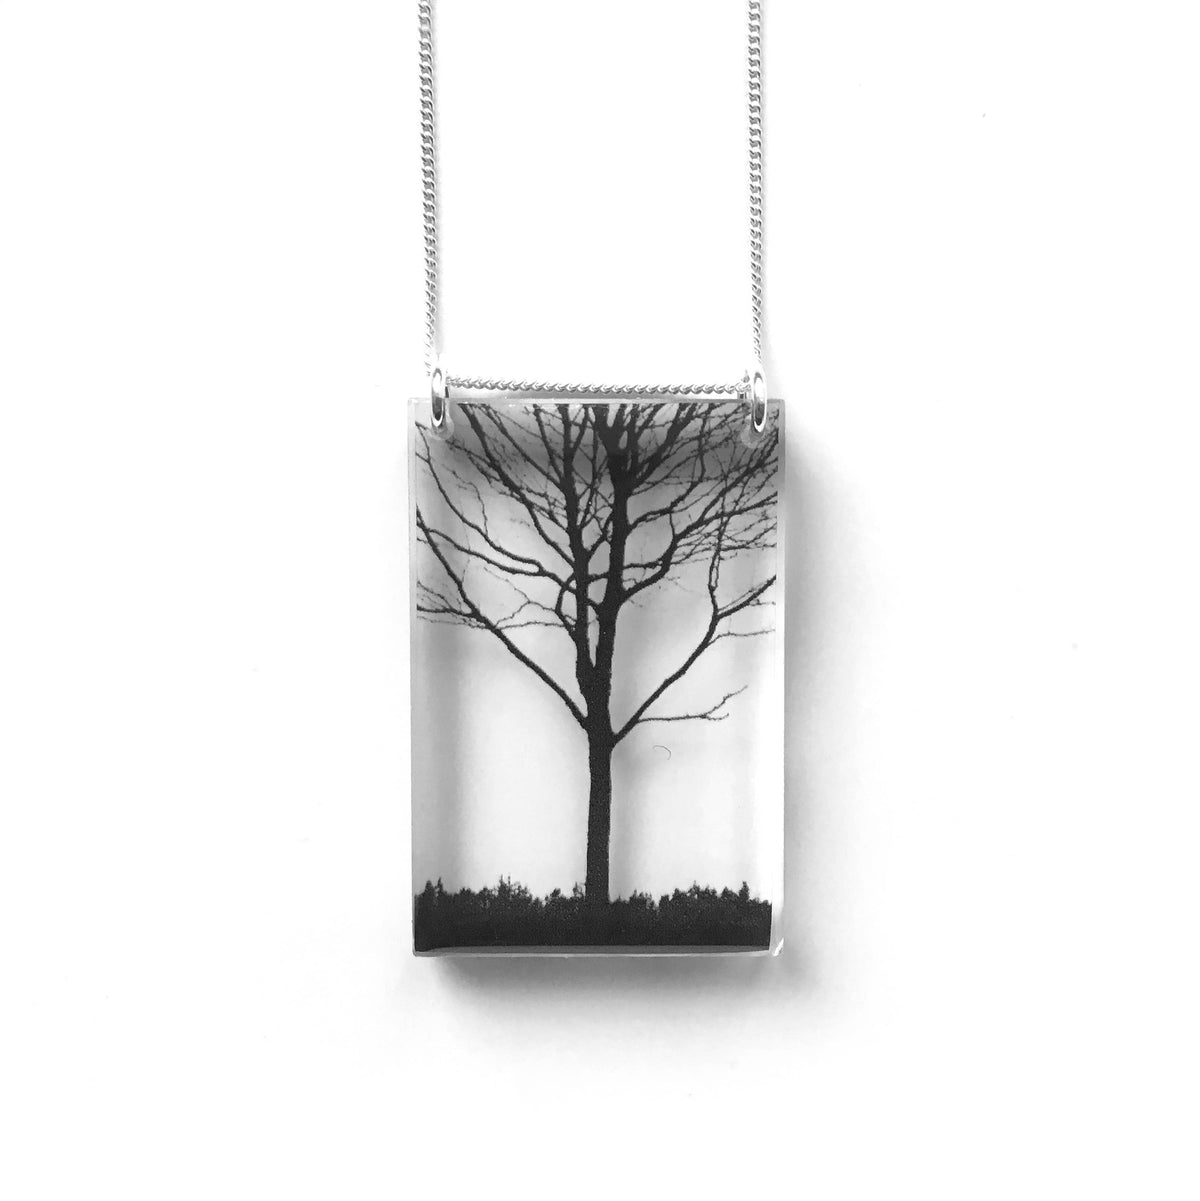 Black Drop Designs - Tall City Tree Necklace